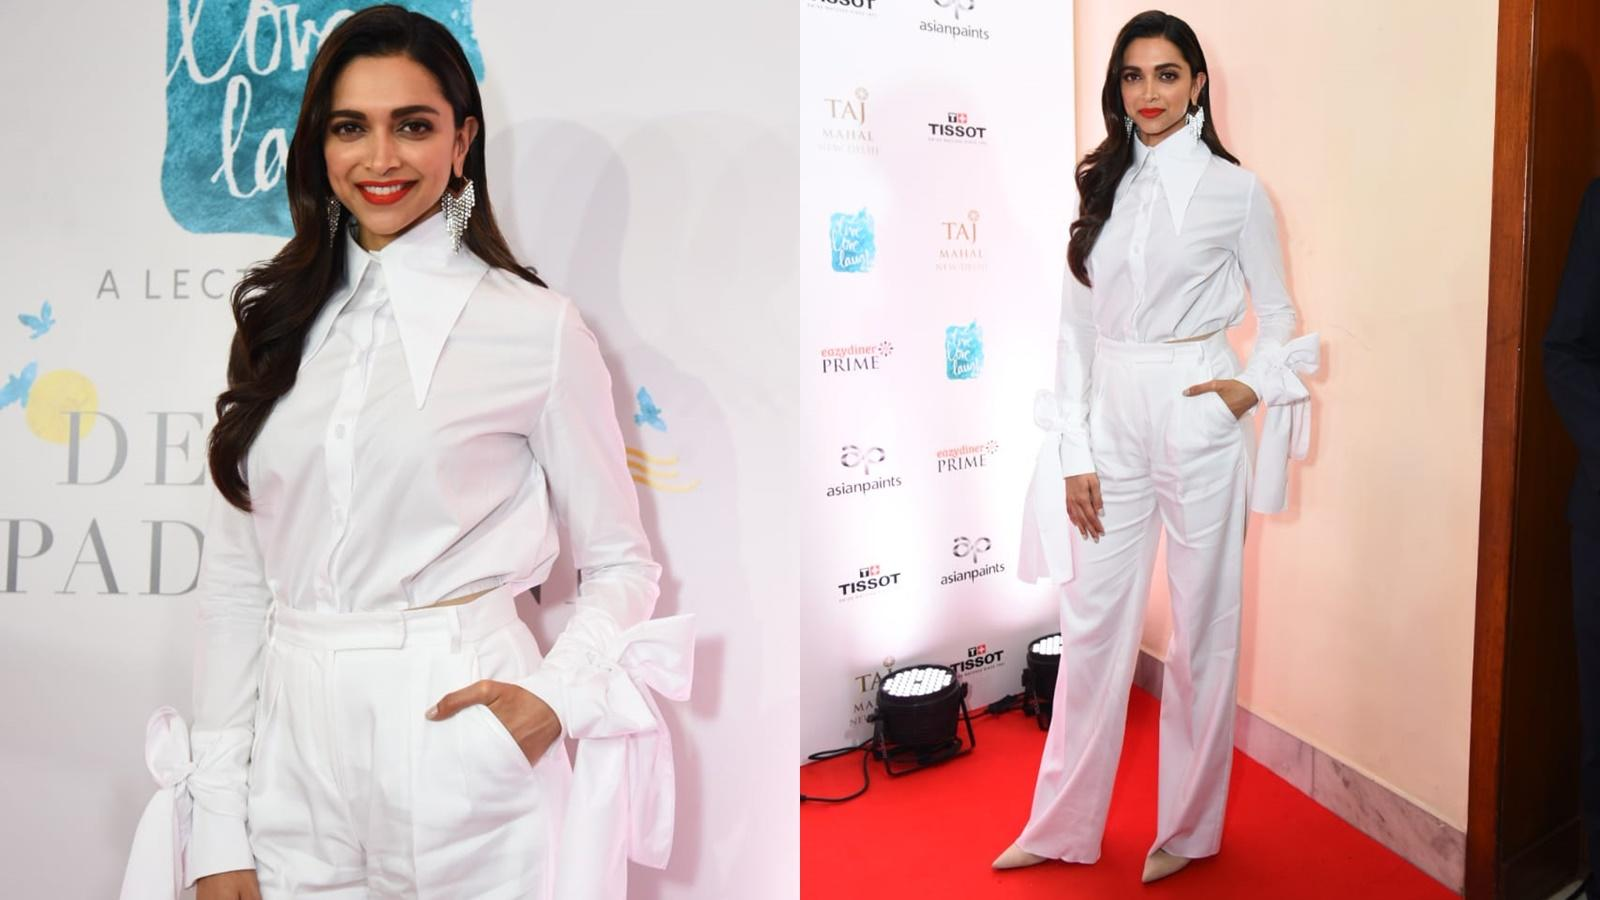 Deepika Padukone looks gorgeous as ever in an all white attire!